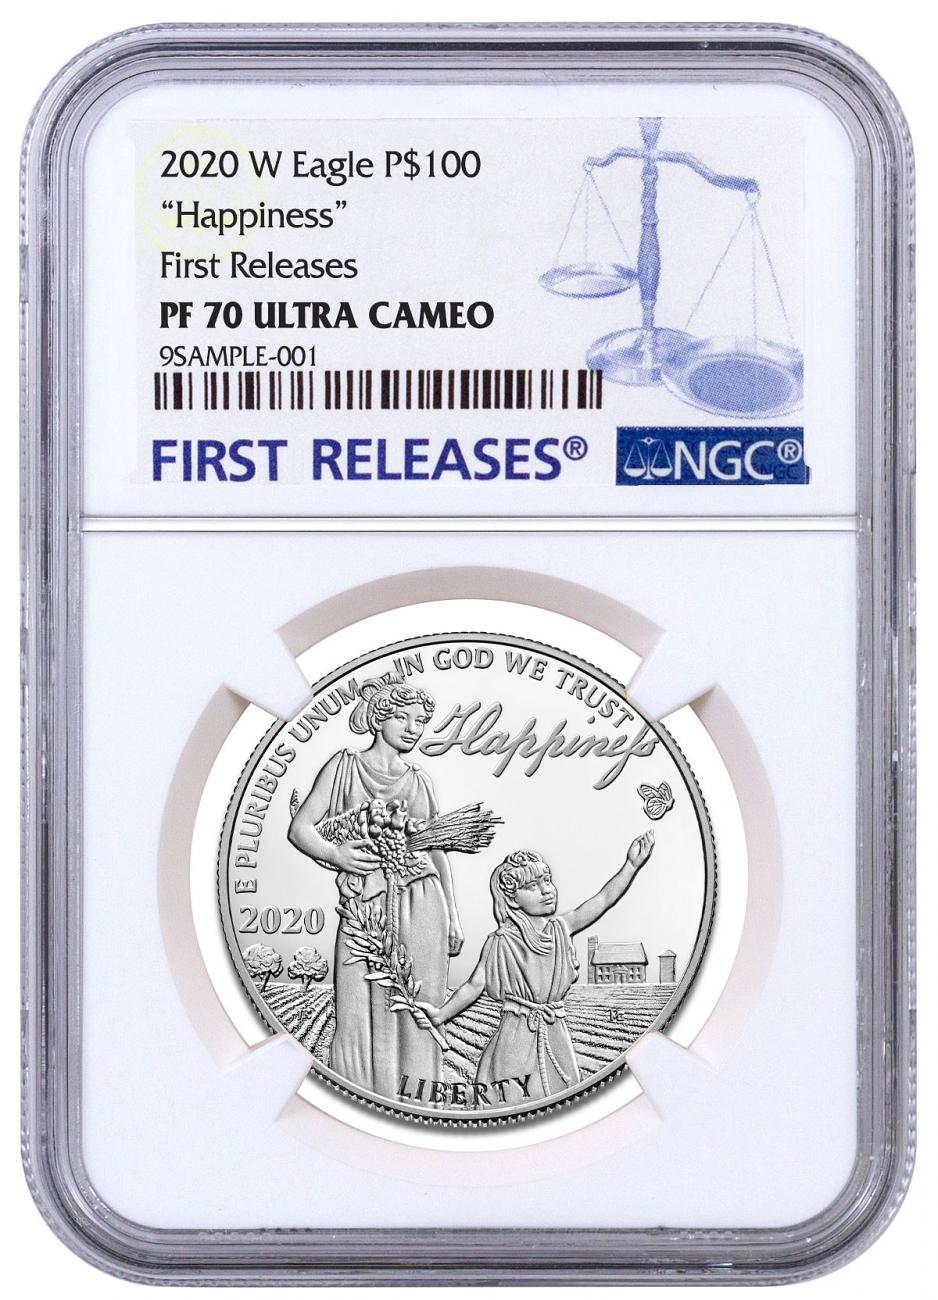 2020-W 1 oz Platinum American Eagle Pursuit of Happiness Proof $100 Coin NGC PF70 UC FR